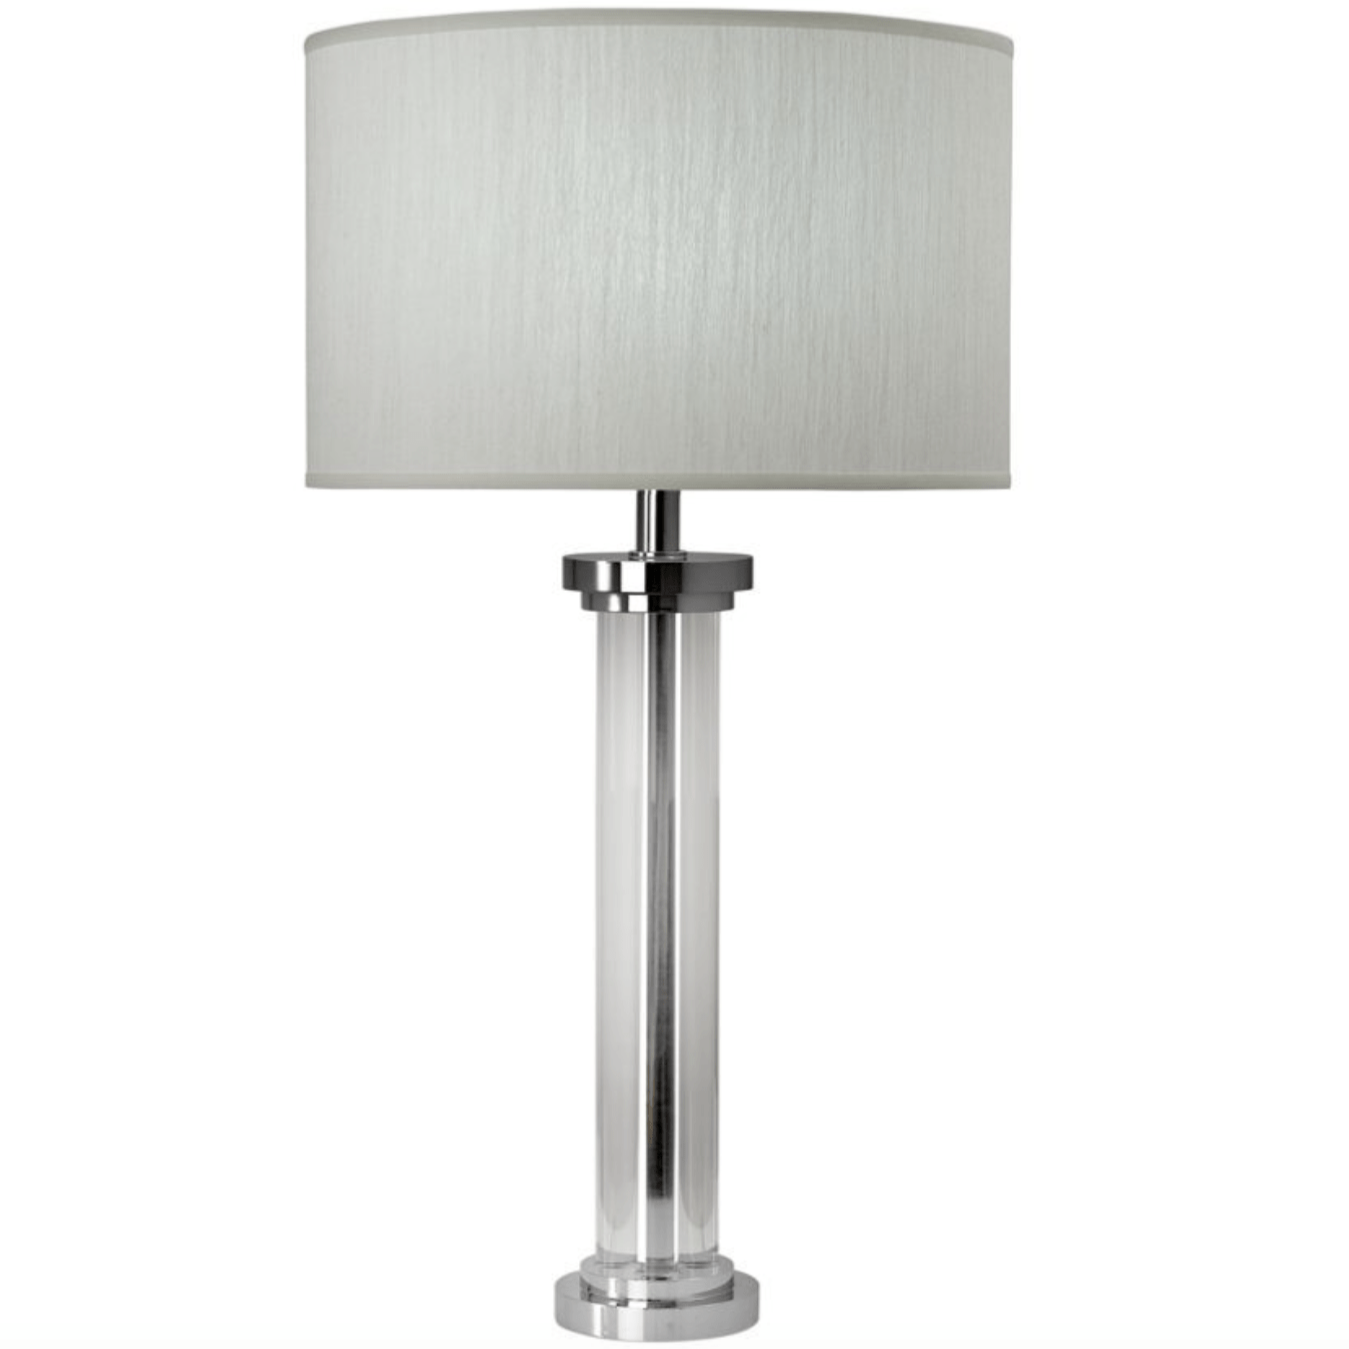 Acrylic Cylinder Shaped Table Lamp